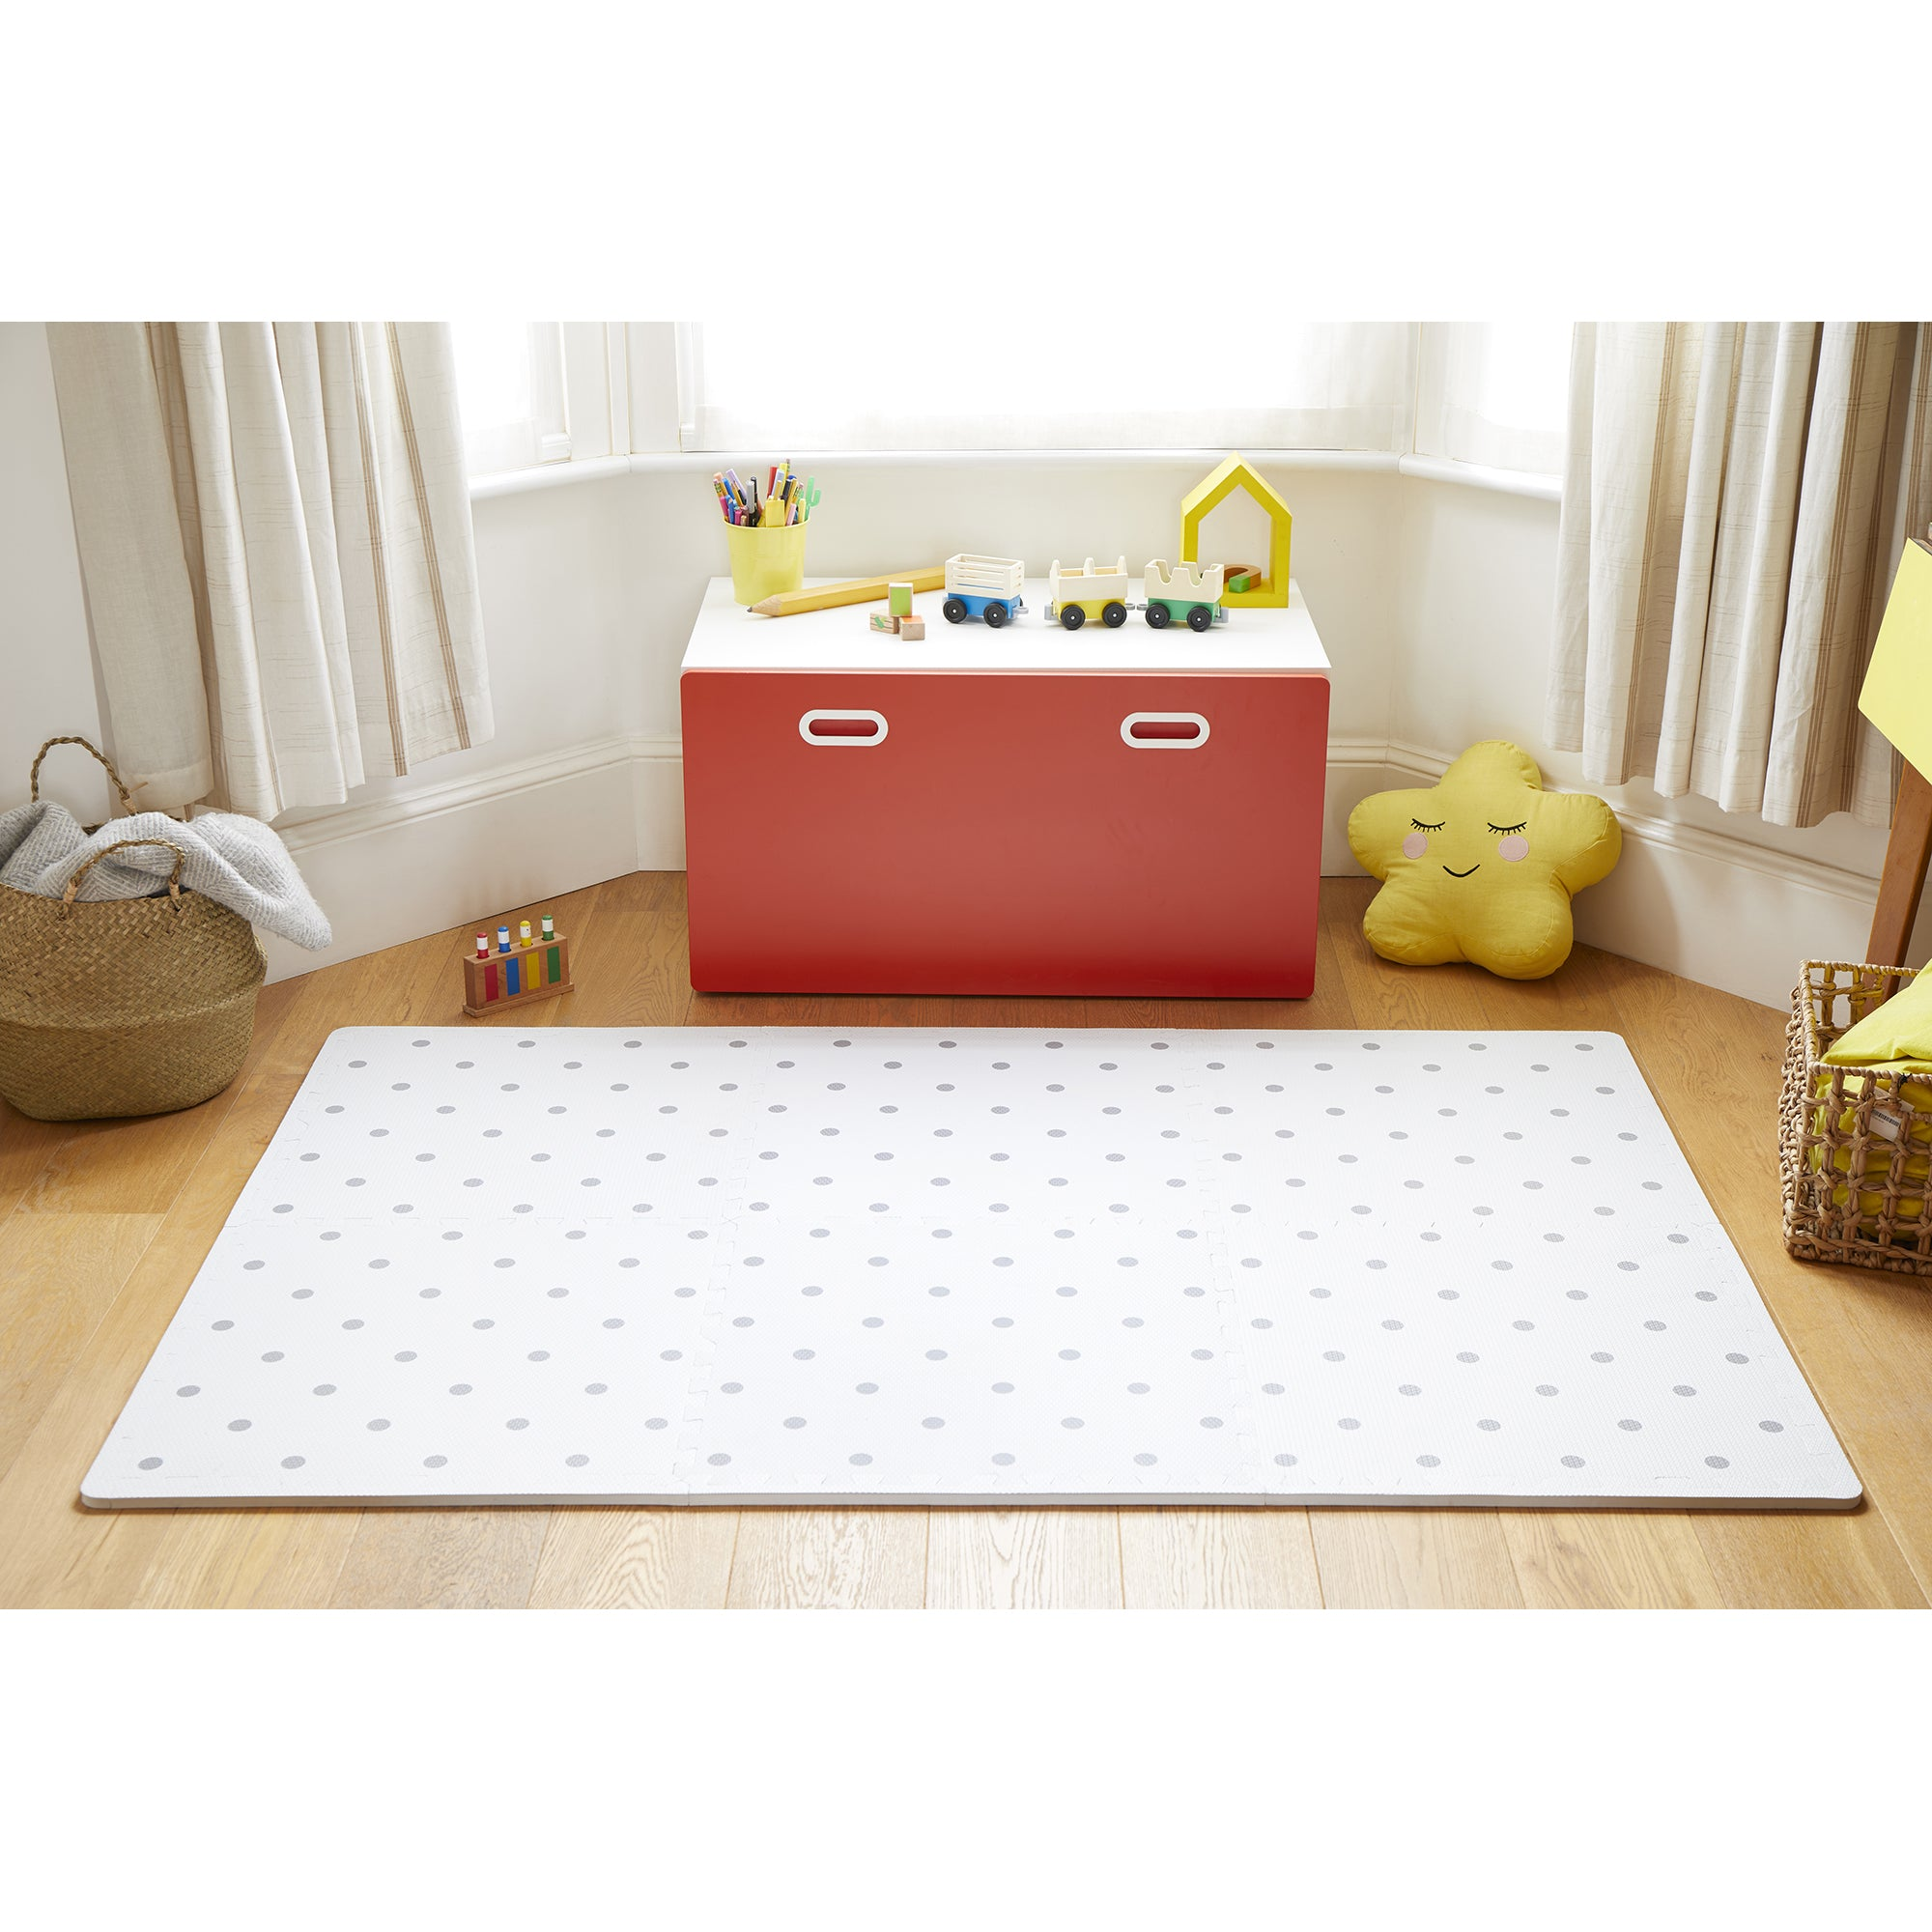 Circle Playmat Set in White